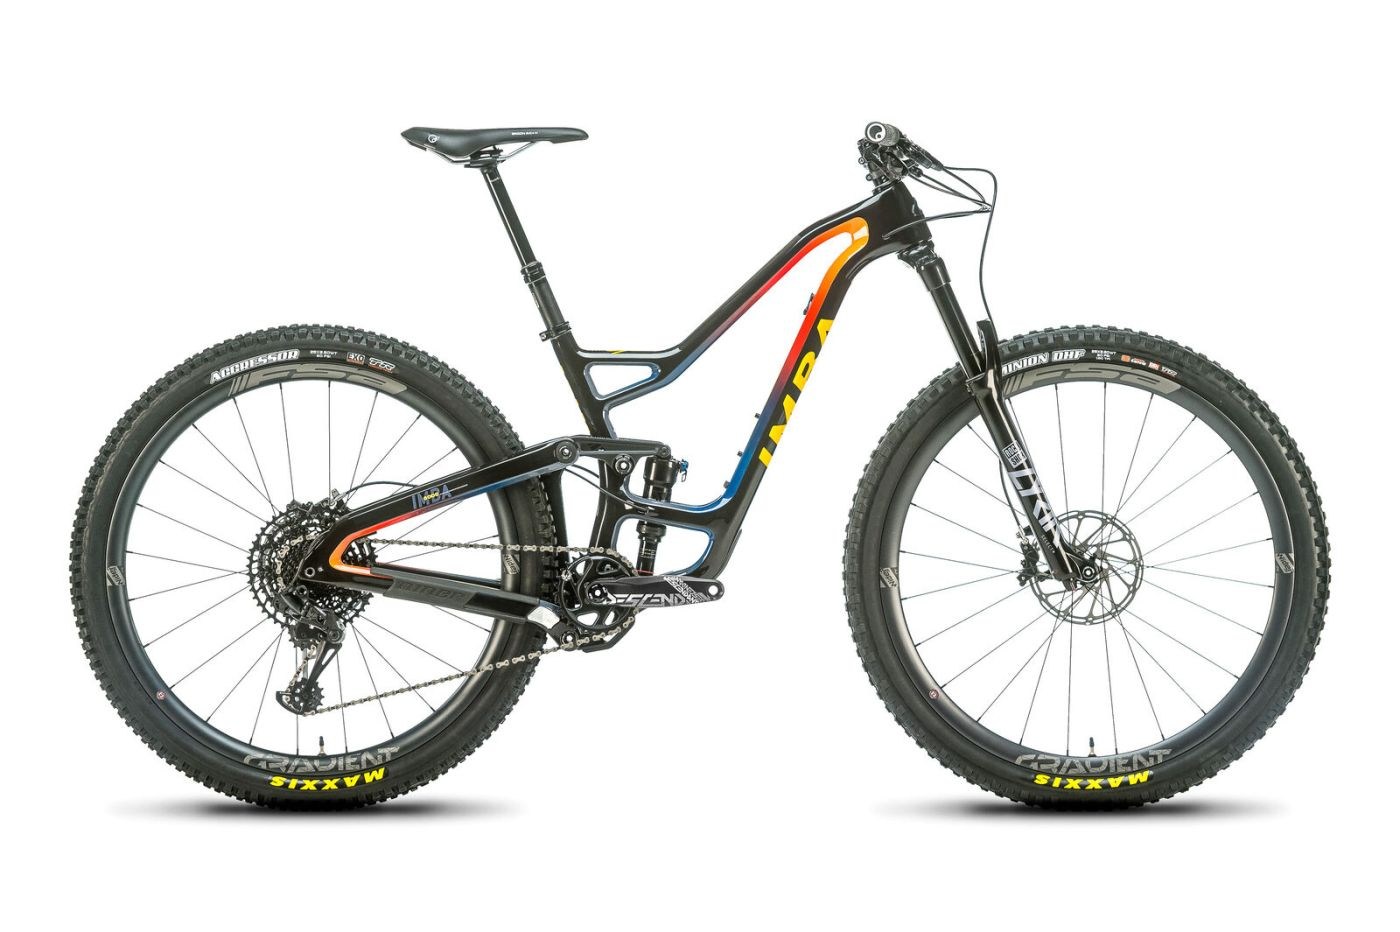 Bid on a 2019 Niner RIP 9 RDO IMBA Custom Mountain Bike 3